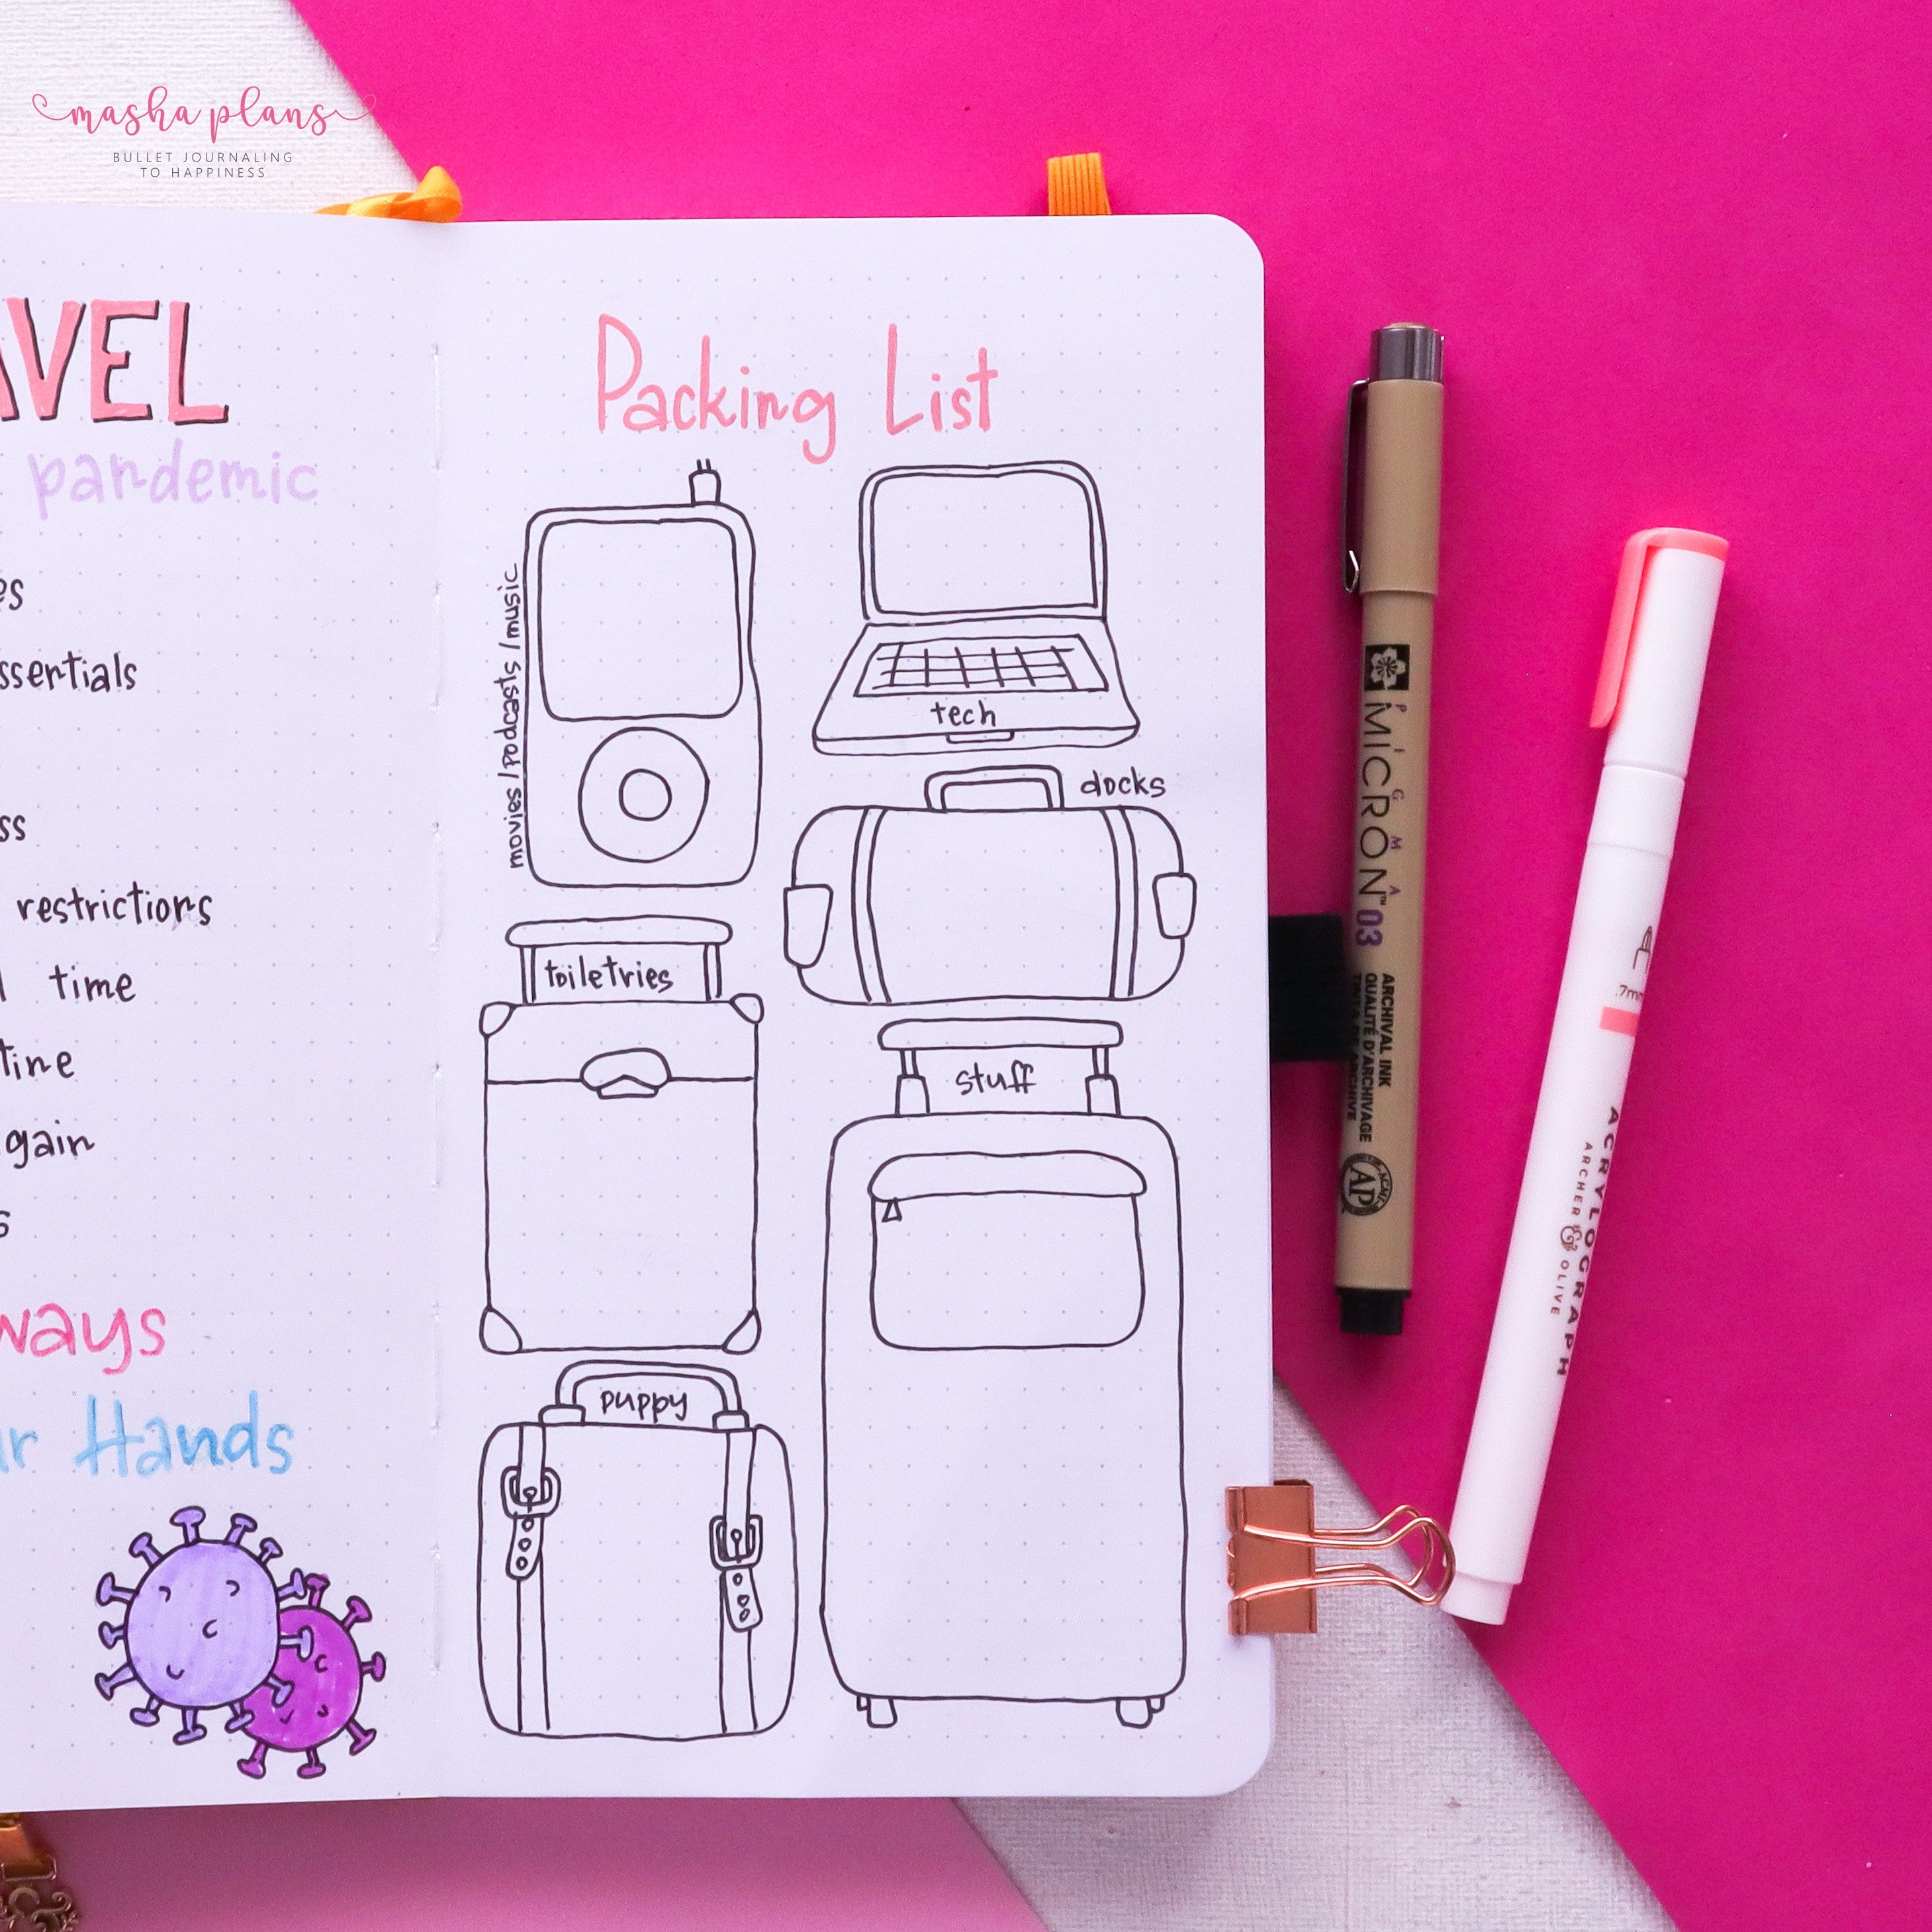 travel journal, masha plans, travel pages, packing list, masha plans. archer and olive